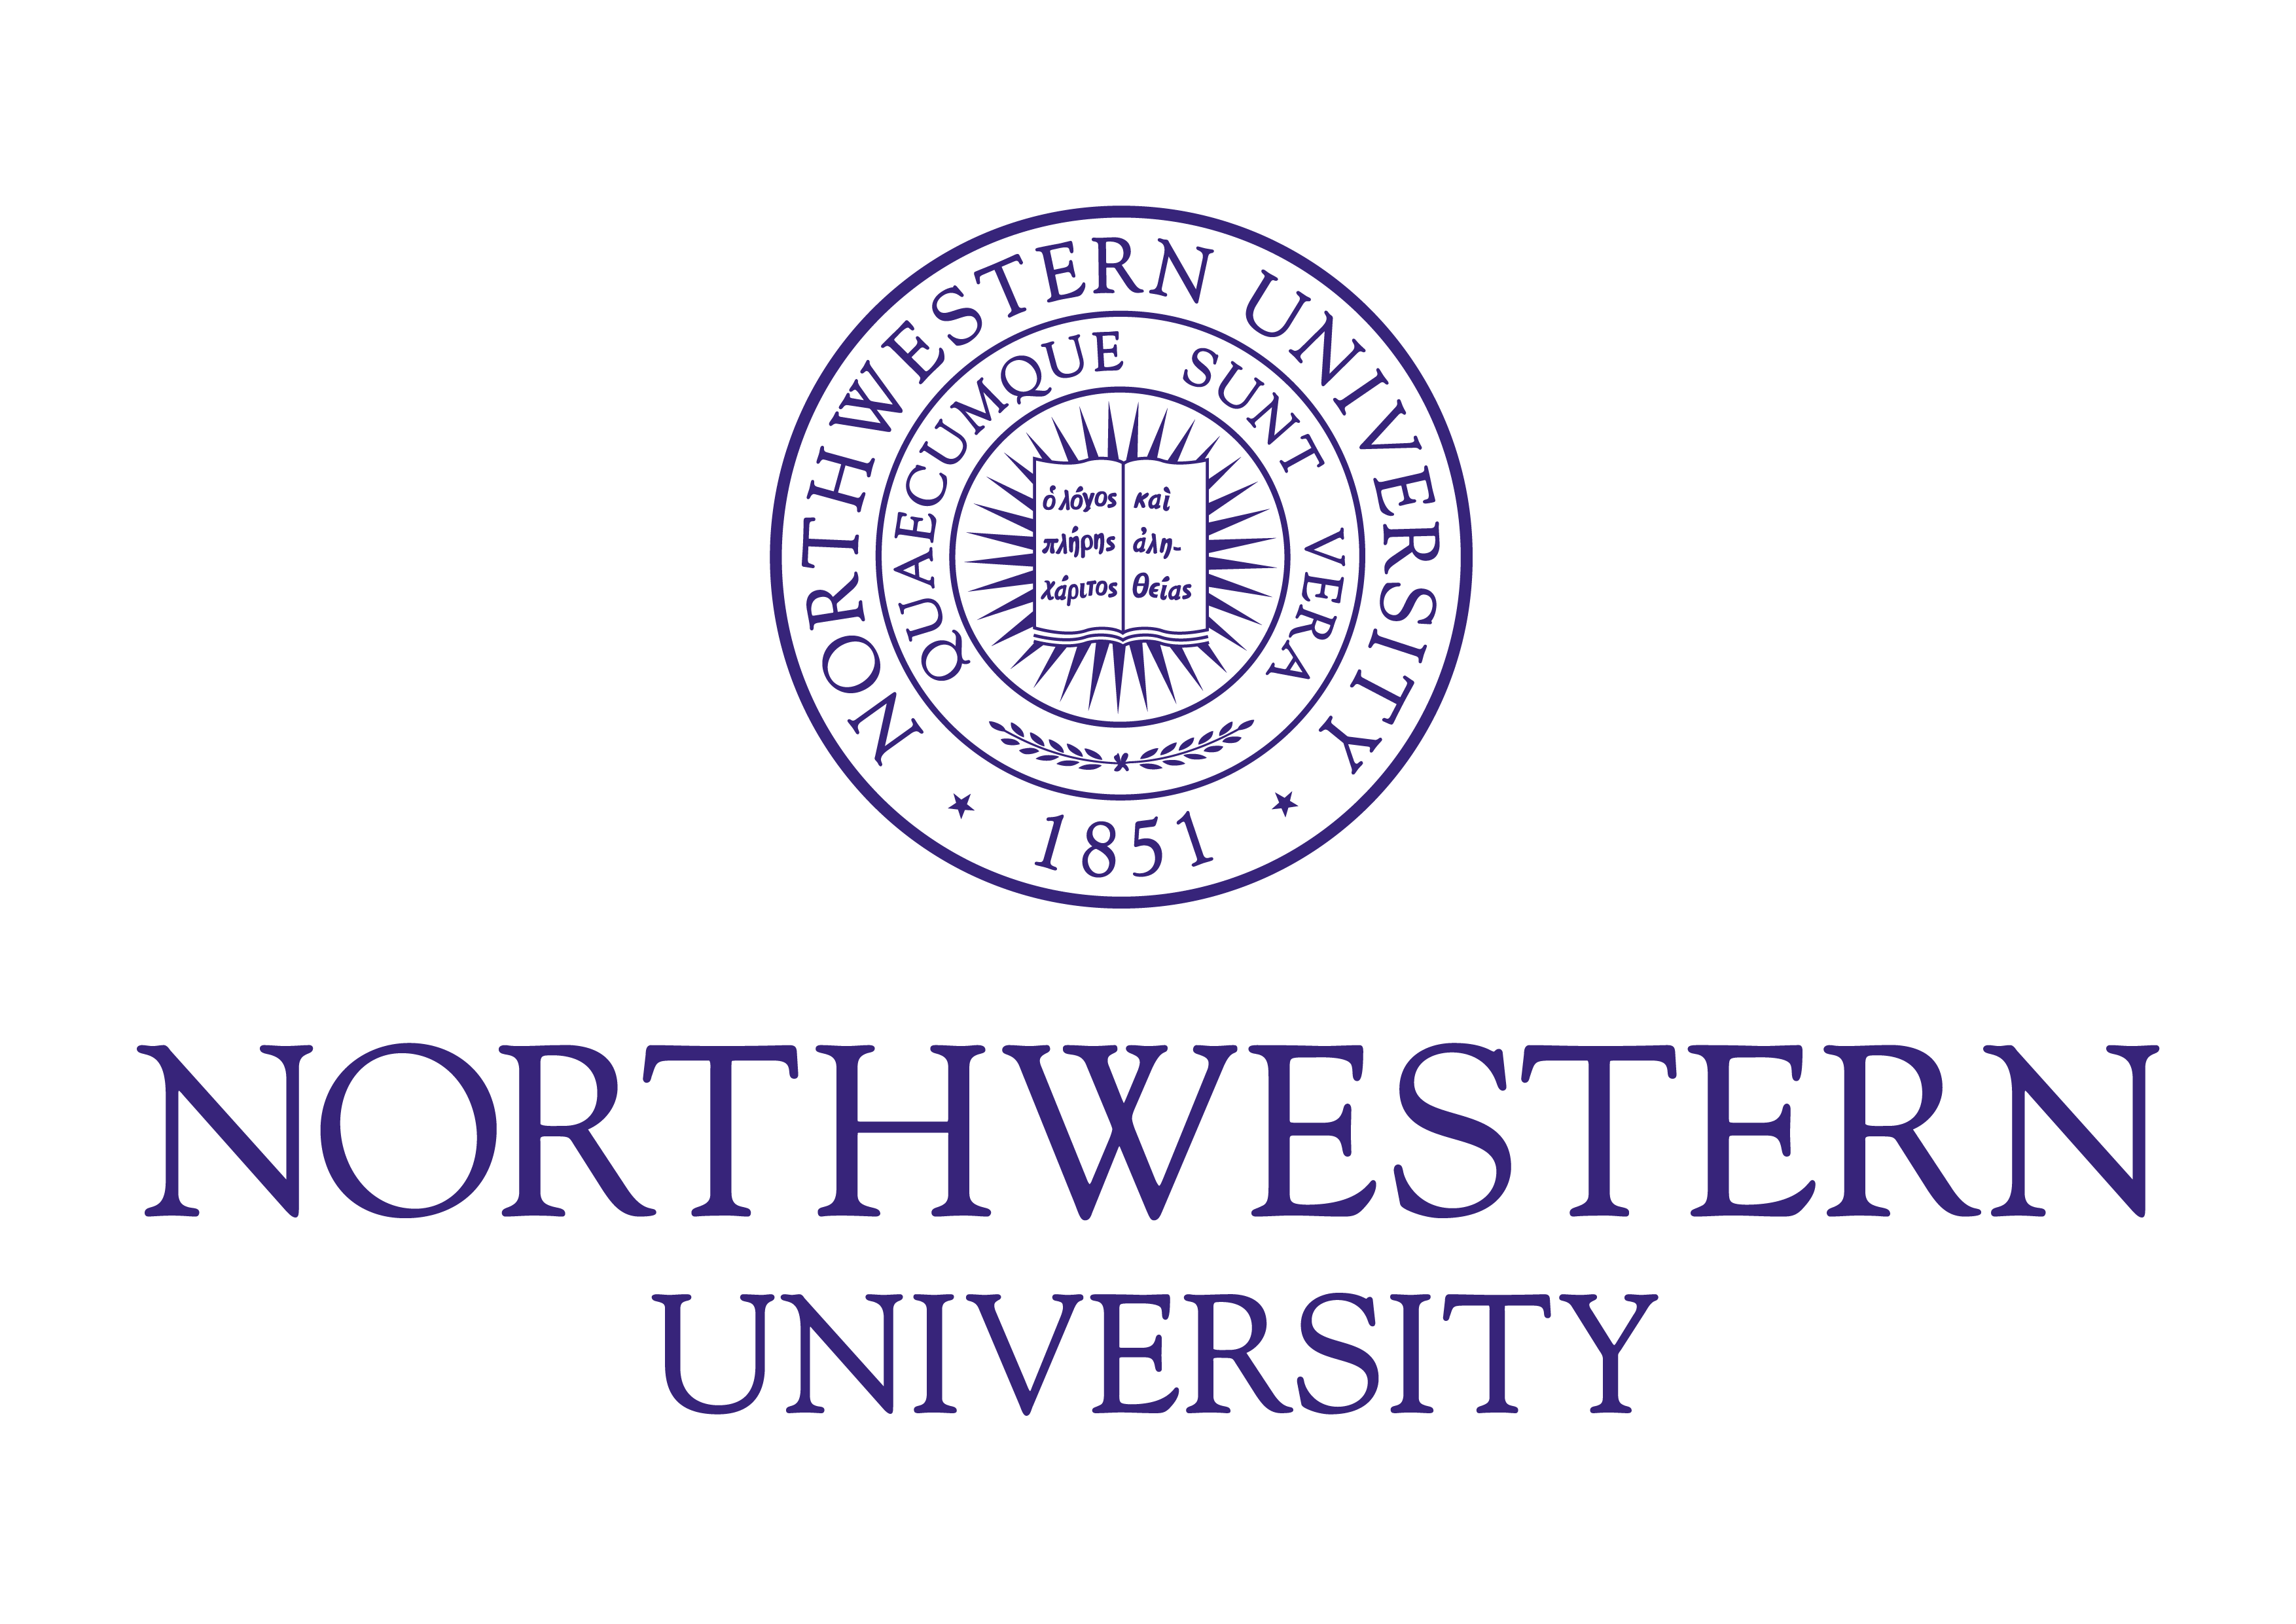 northwestern_university_logo-01